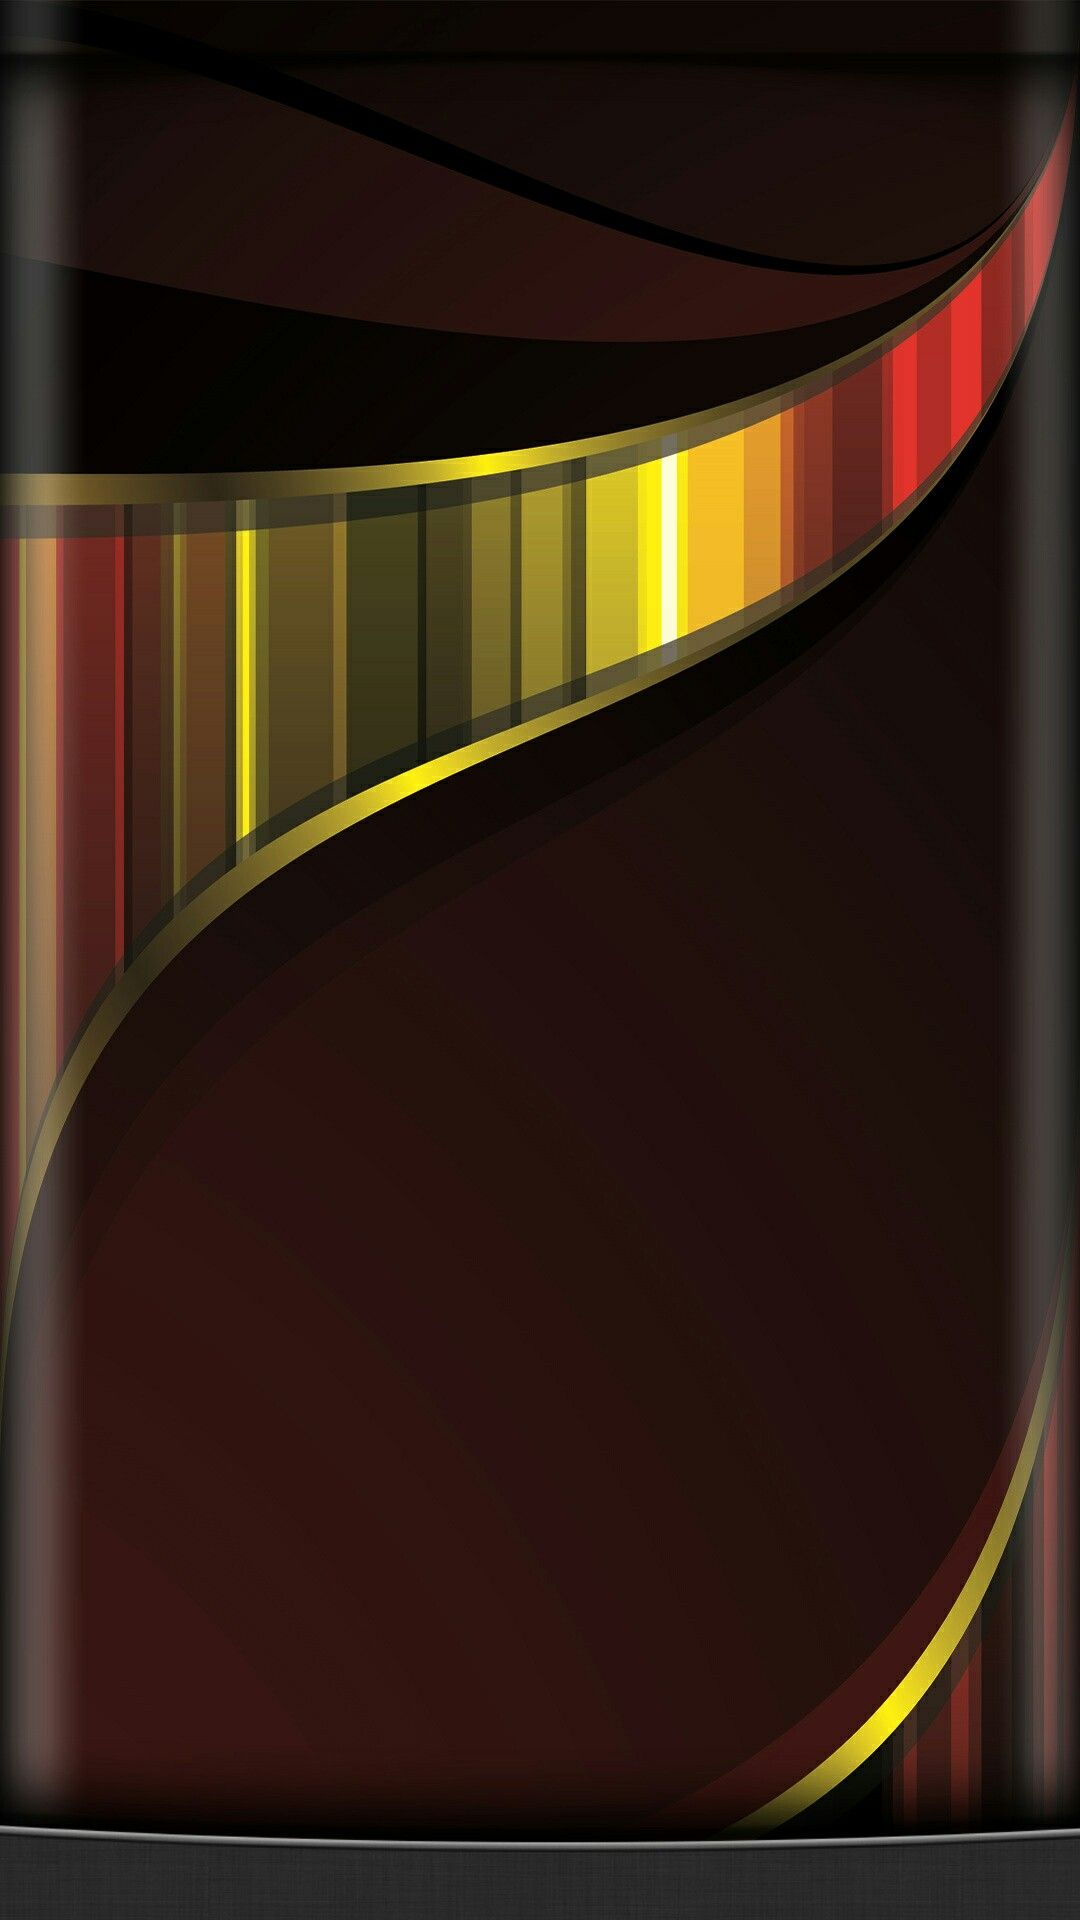 Black and gold samsung wallpaper android wallpaper - Gold wallpaper for android ...